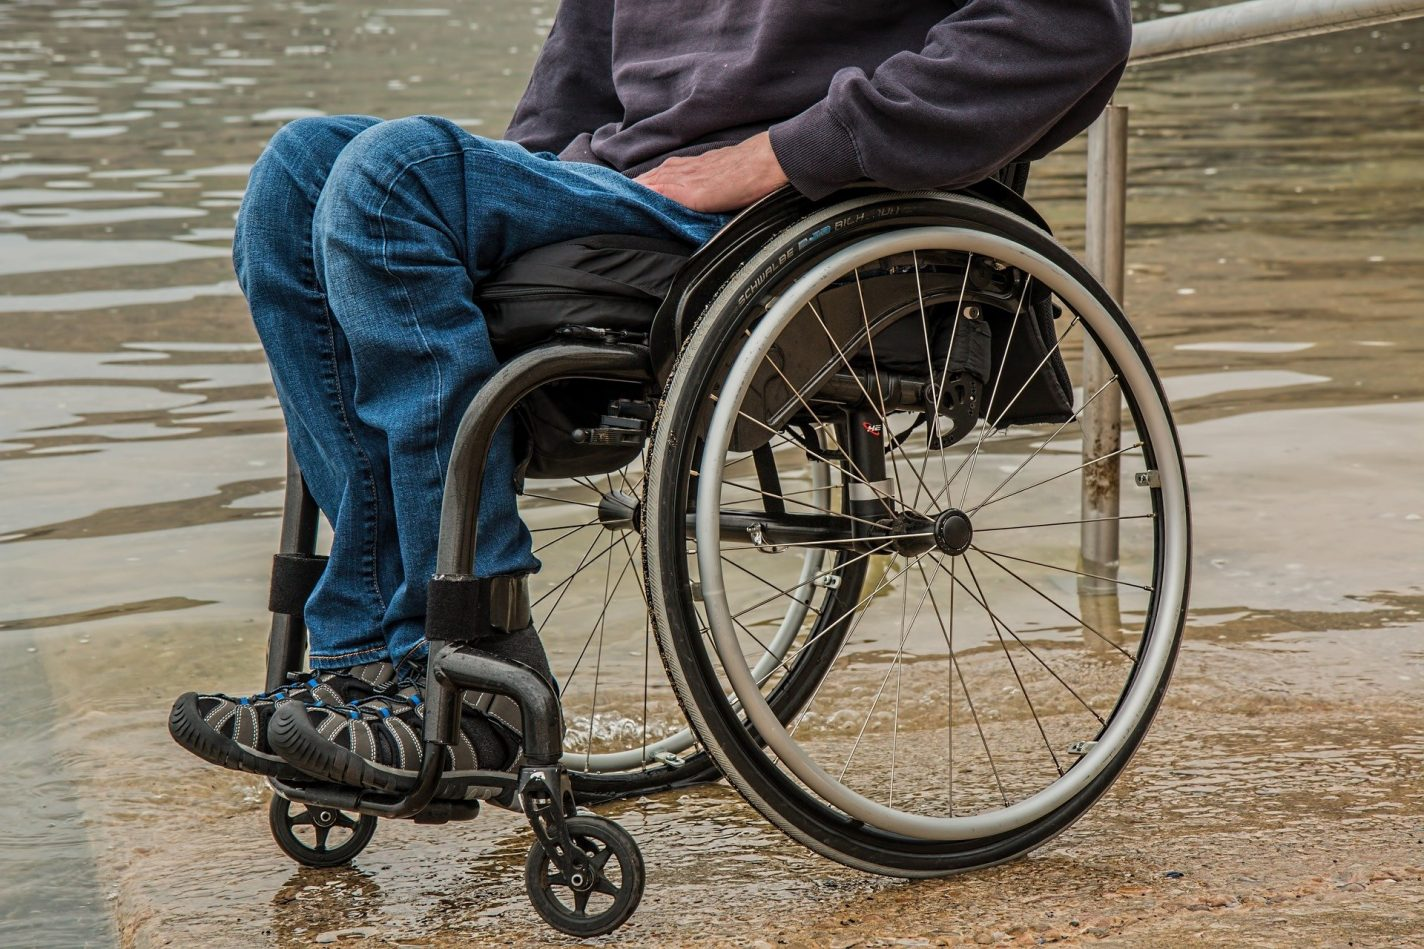 This shows a person in a wheelchair